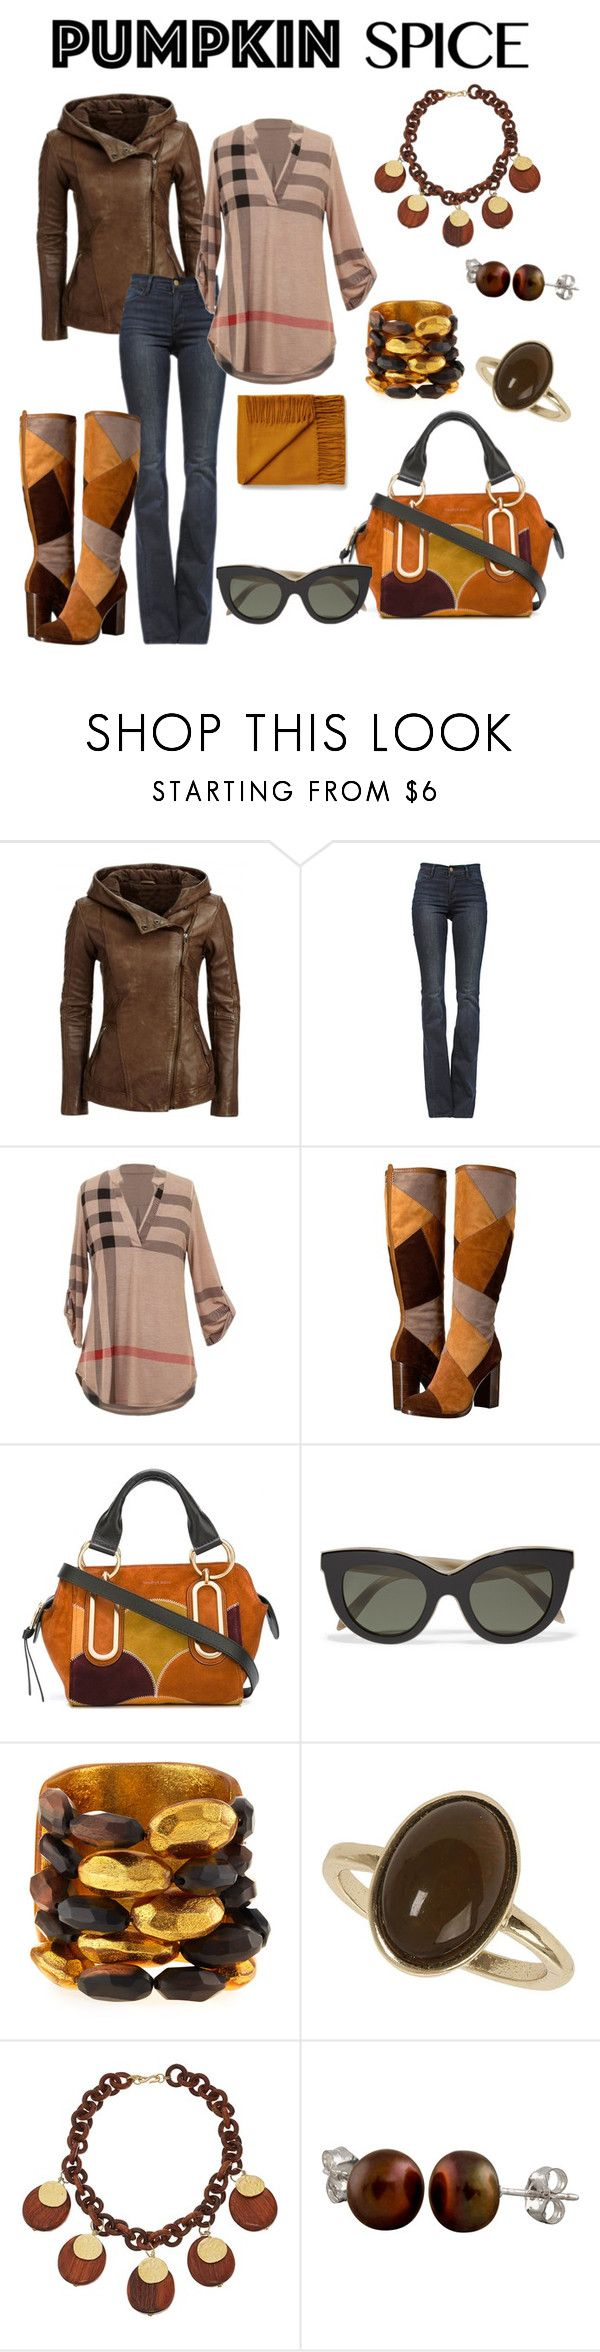 """coffee date"" by mentalterrorist on Polyvore featuring Frame Denim, Frye, See by Chloé, Victoria Beckham, Viktoria Hayman, Dorothy Perkins, Kenneth Jay Lane and Splendid Pearls"